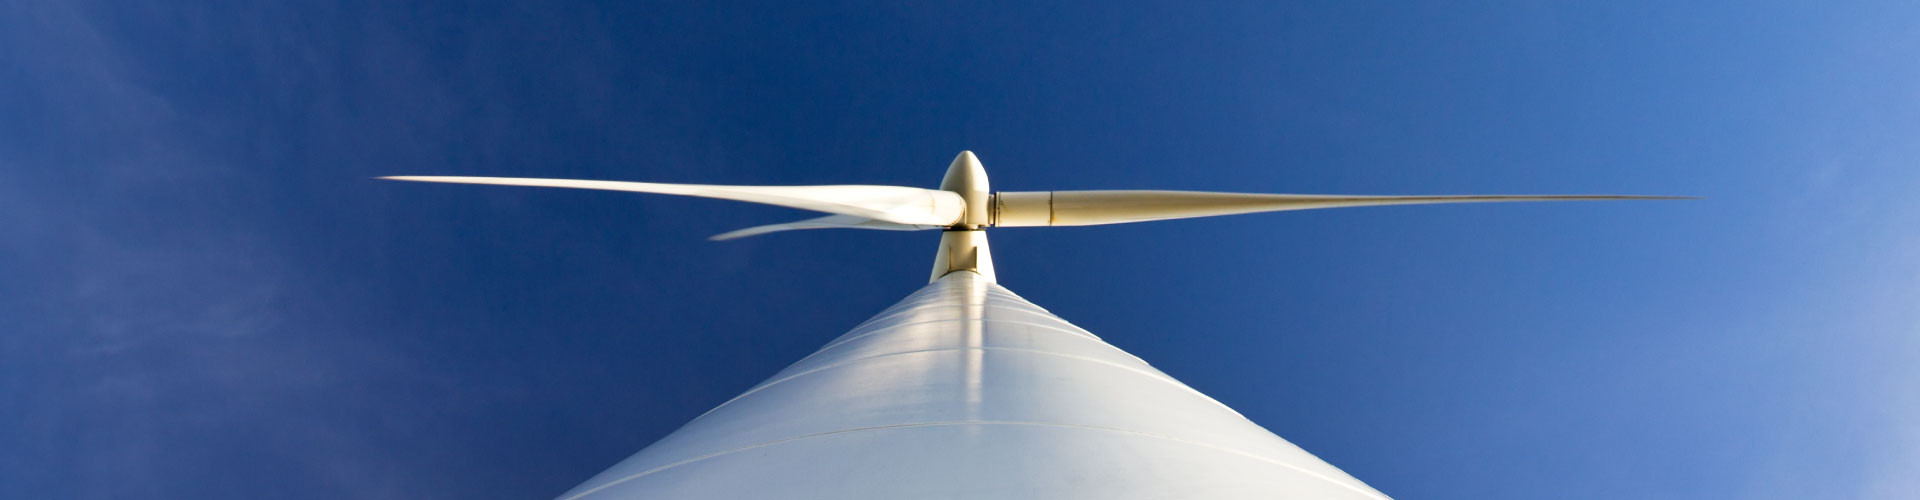 try-as-wind-energy-banner1